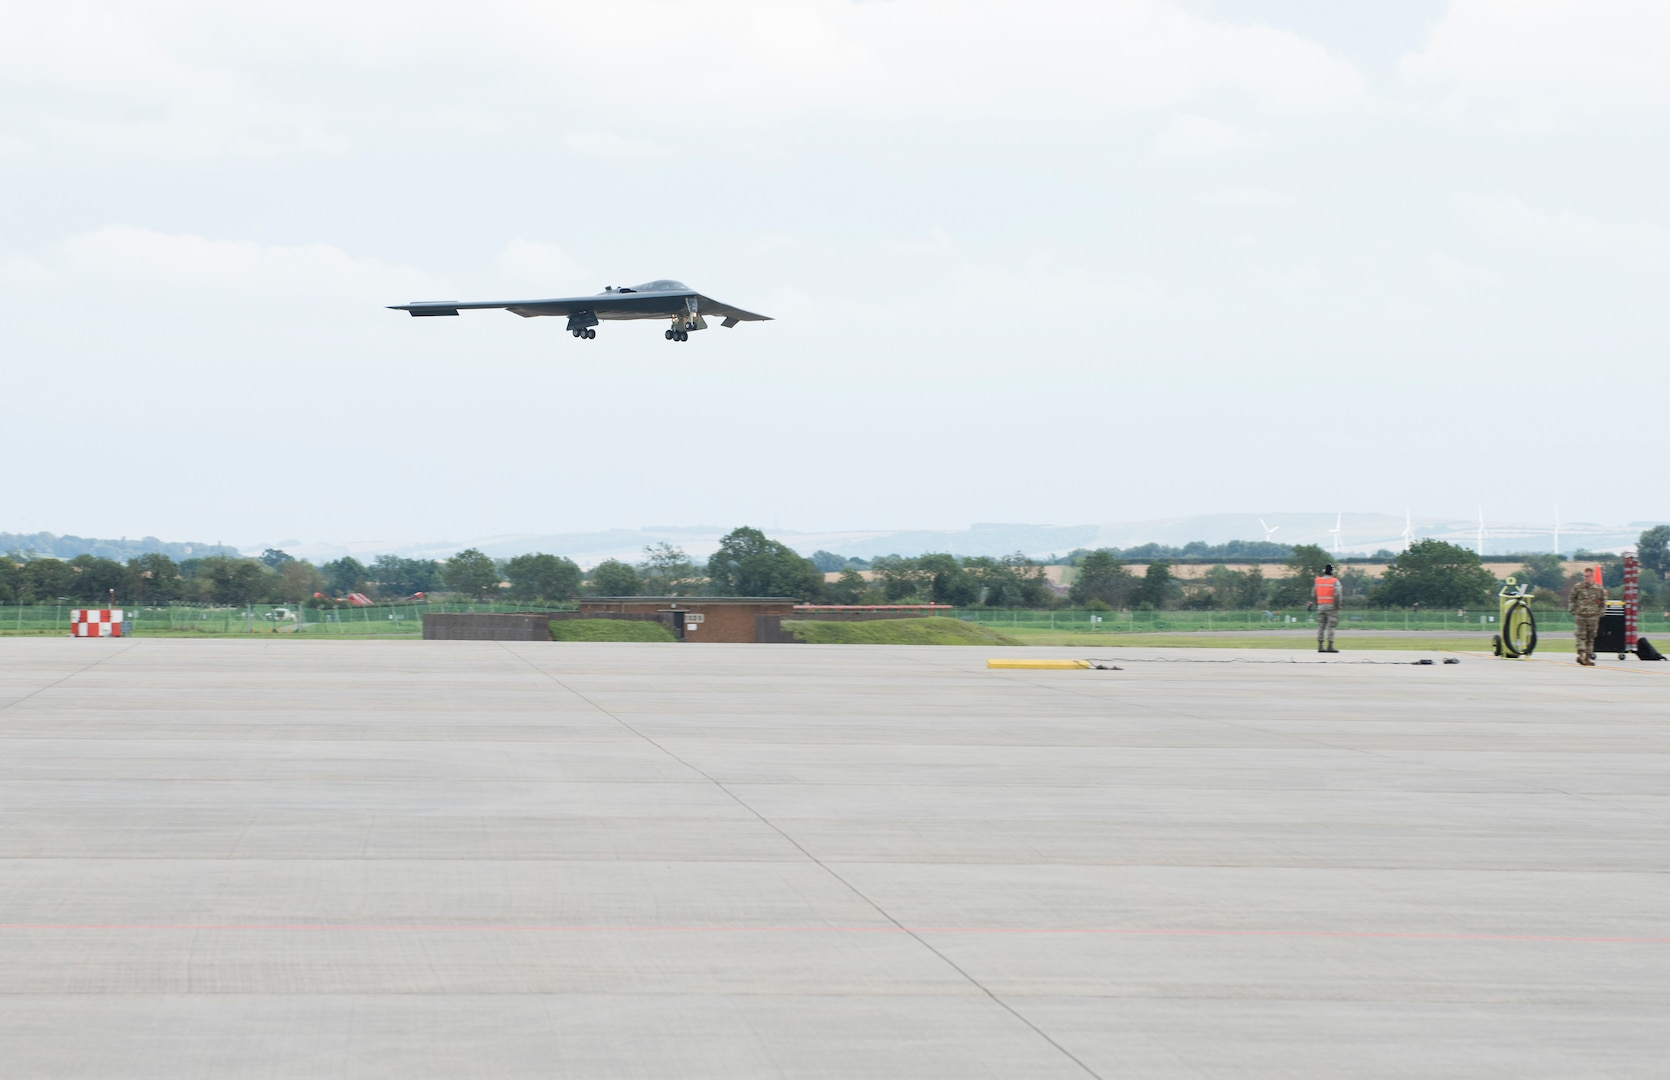 Major General James Dawkins Jr., Eighth Air Force commander, descends in a B-2 Spirit onto the flight line of Royal Air Force Base Fairford, England, on August 28, 2019. Dawkins flew the stealth bomber during his visit to engage with members of Whiteman Air Force Base, Missouri, who had deployed to Royal Air Force Fairford as a Bomber Task Force to conduct theater integration and flying training. (U.S. Air Force photo by Staff Sgt. Kayla White)